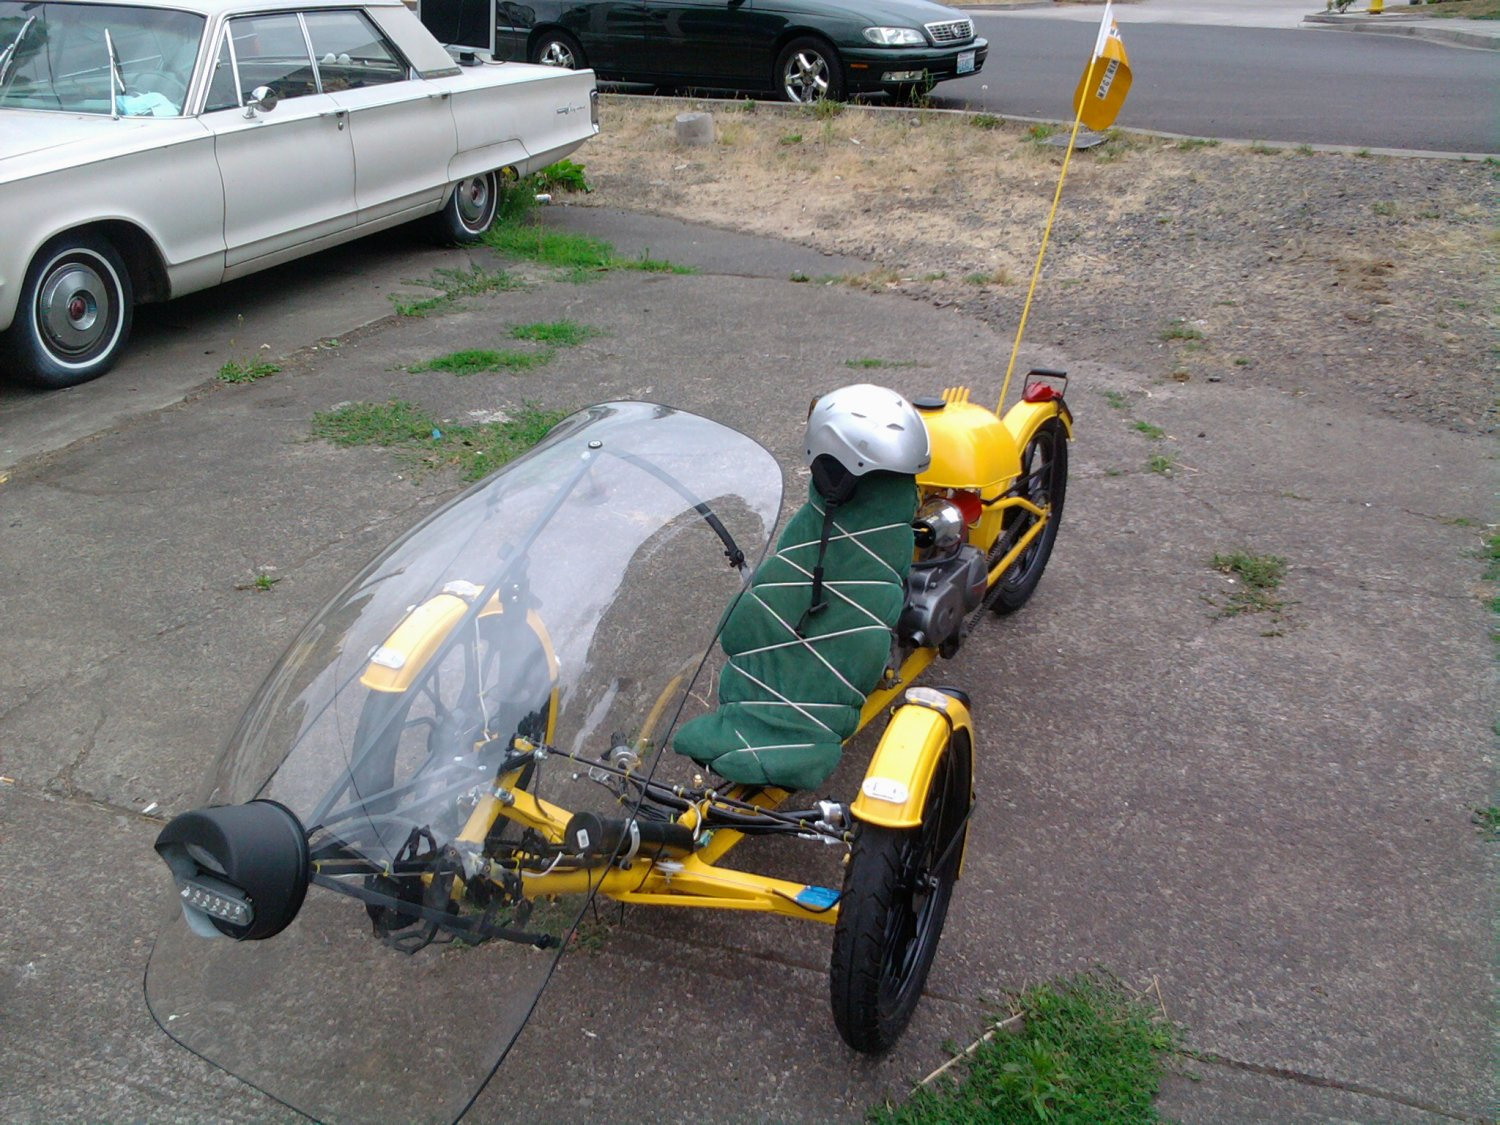 Bumble Bee Recumbent Tadpole 49cc Motor Assisted Bicycle